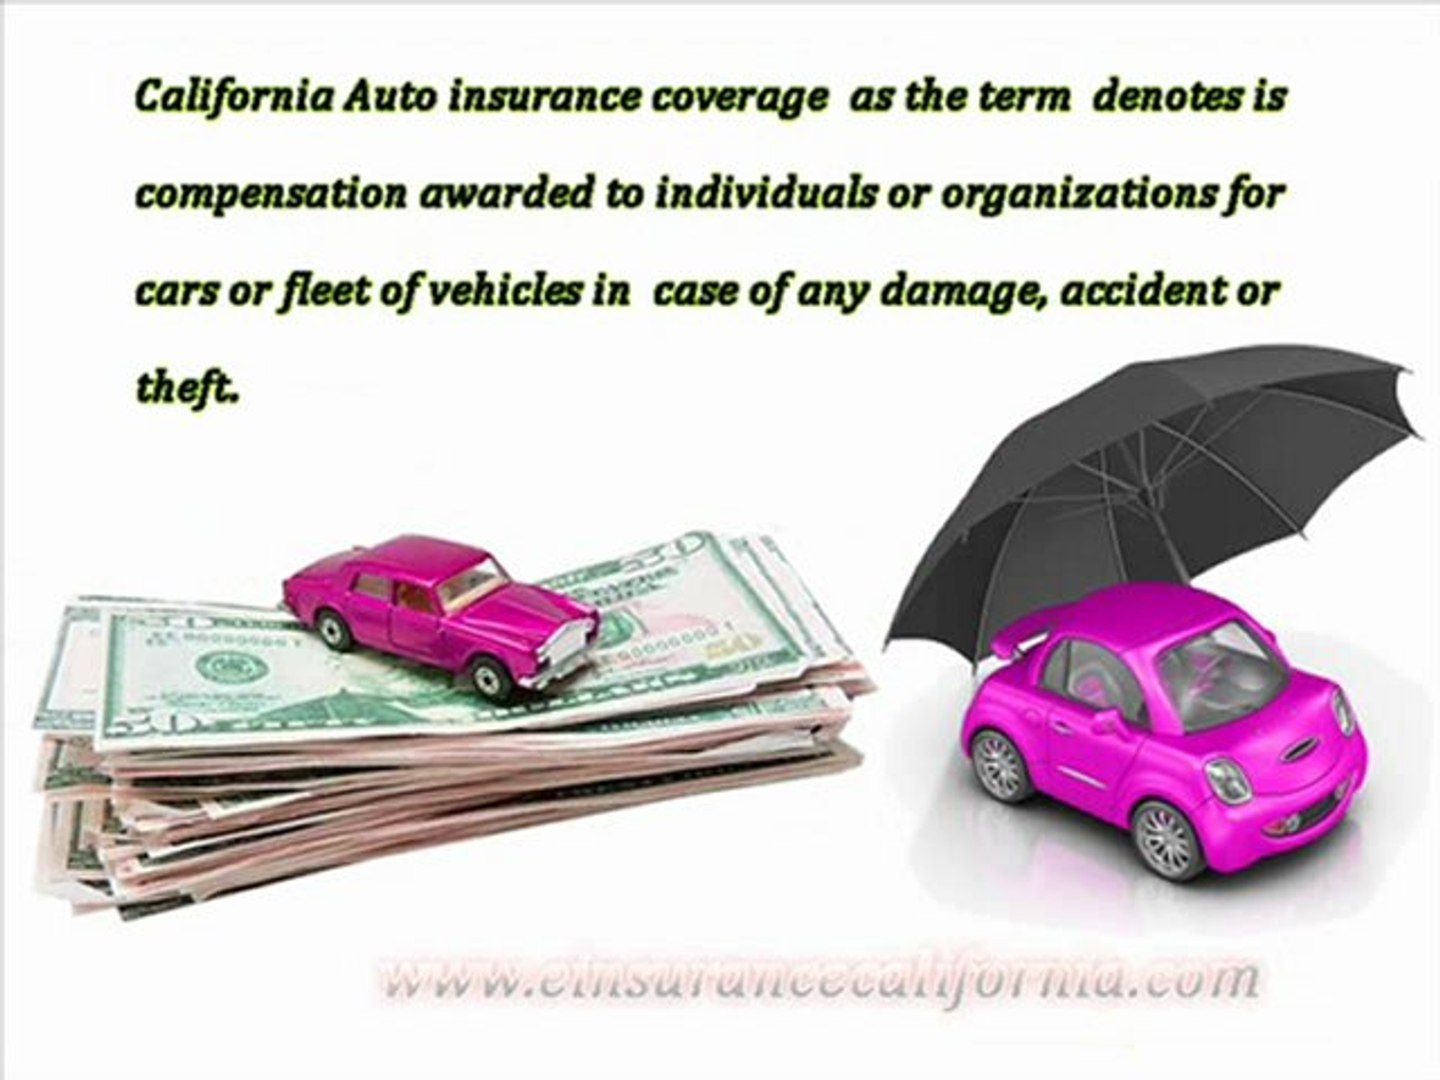 California Auto Insurance Provide a complete Protection to our Vehicles